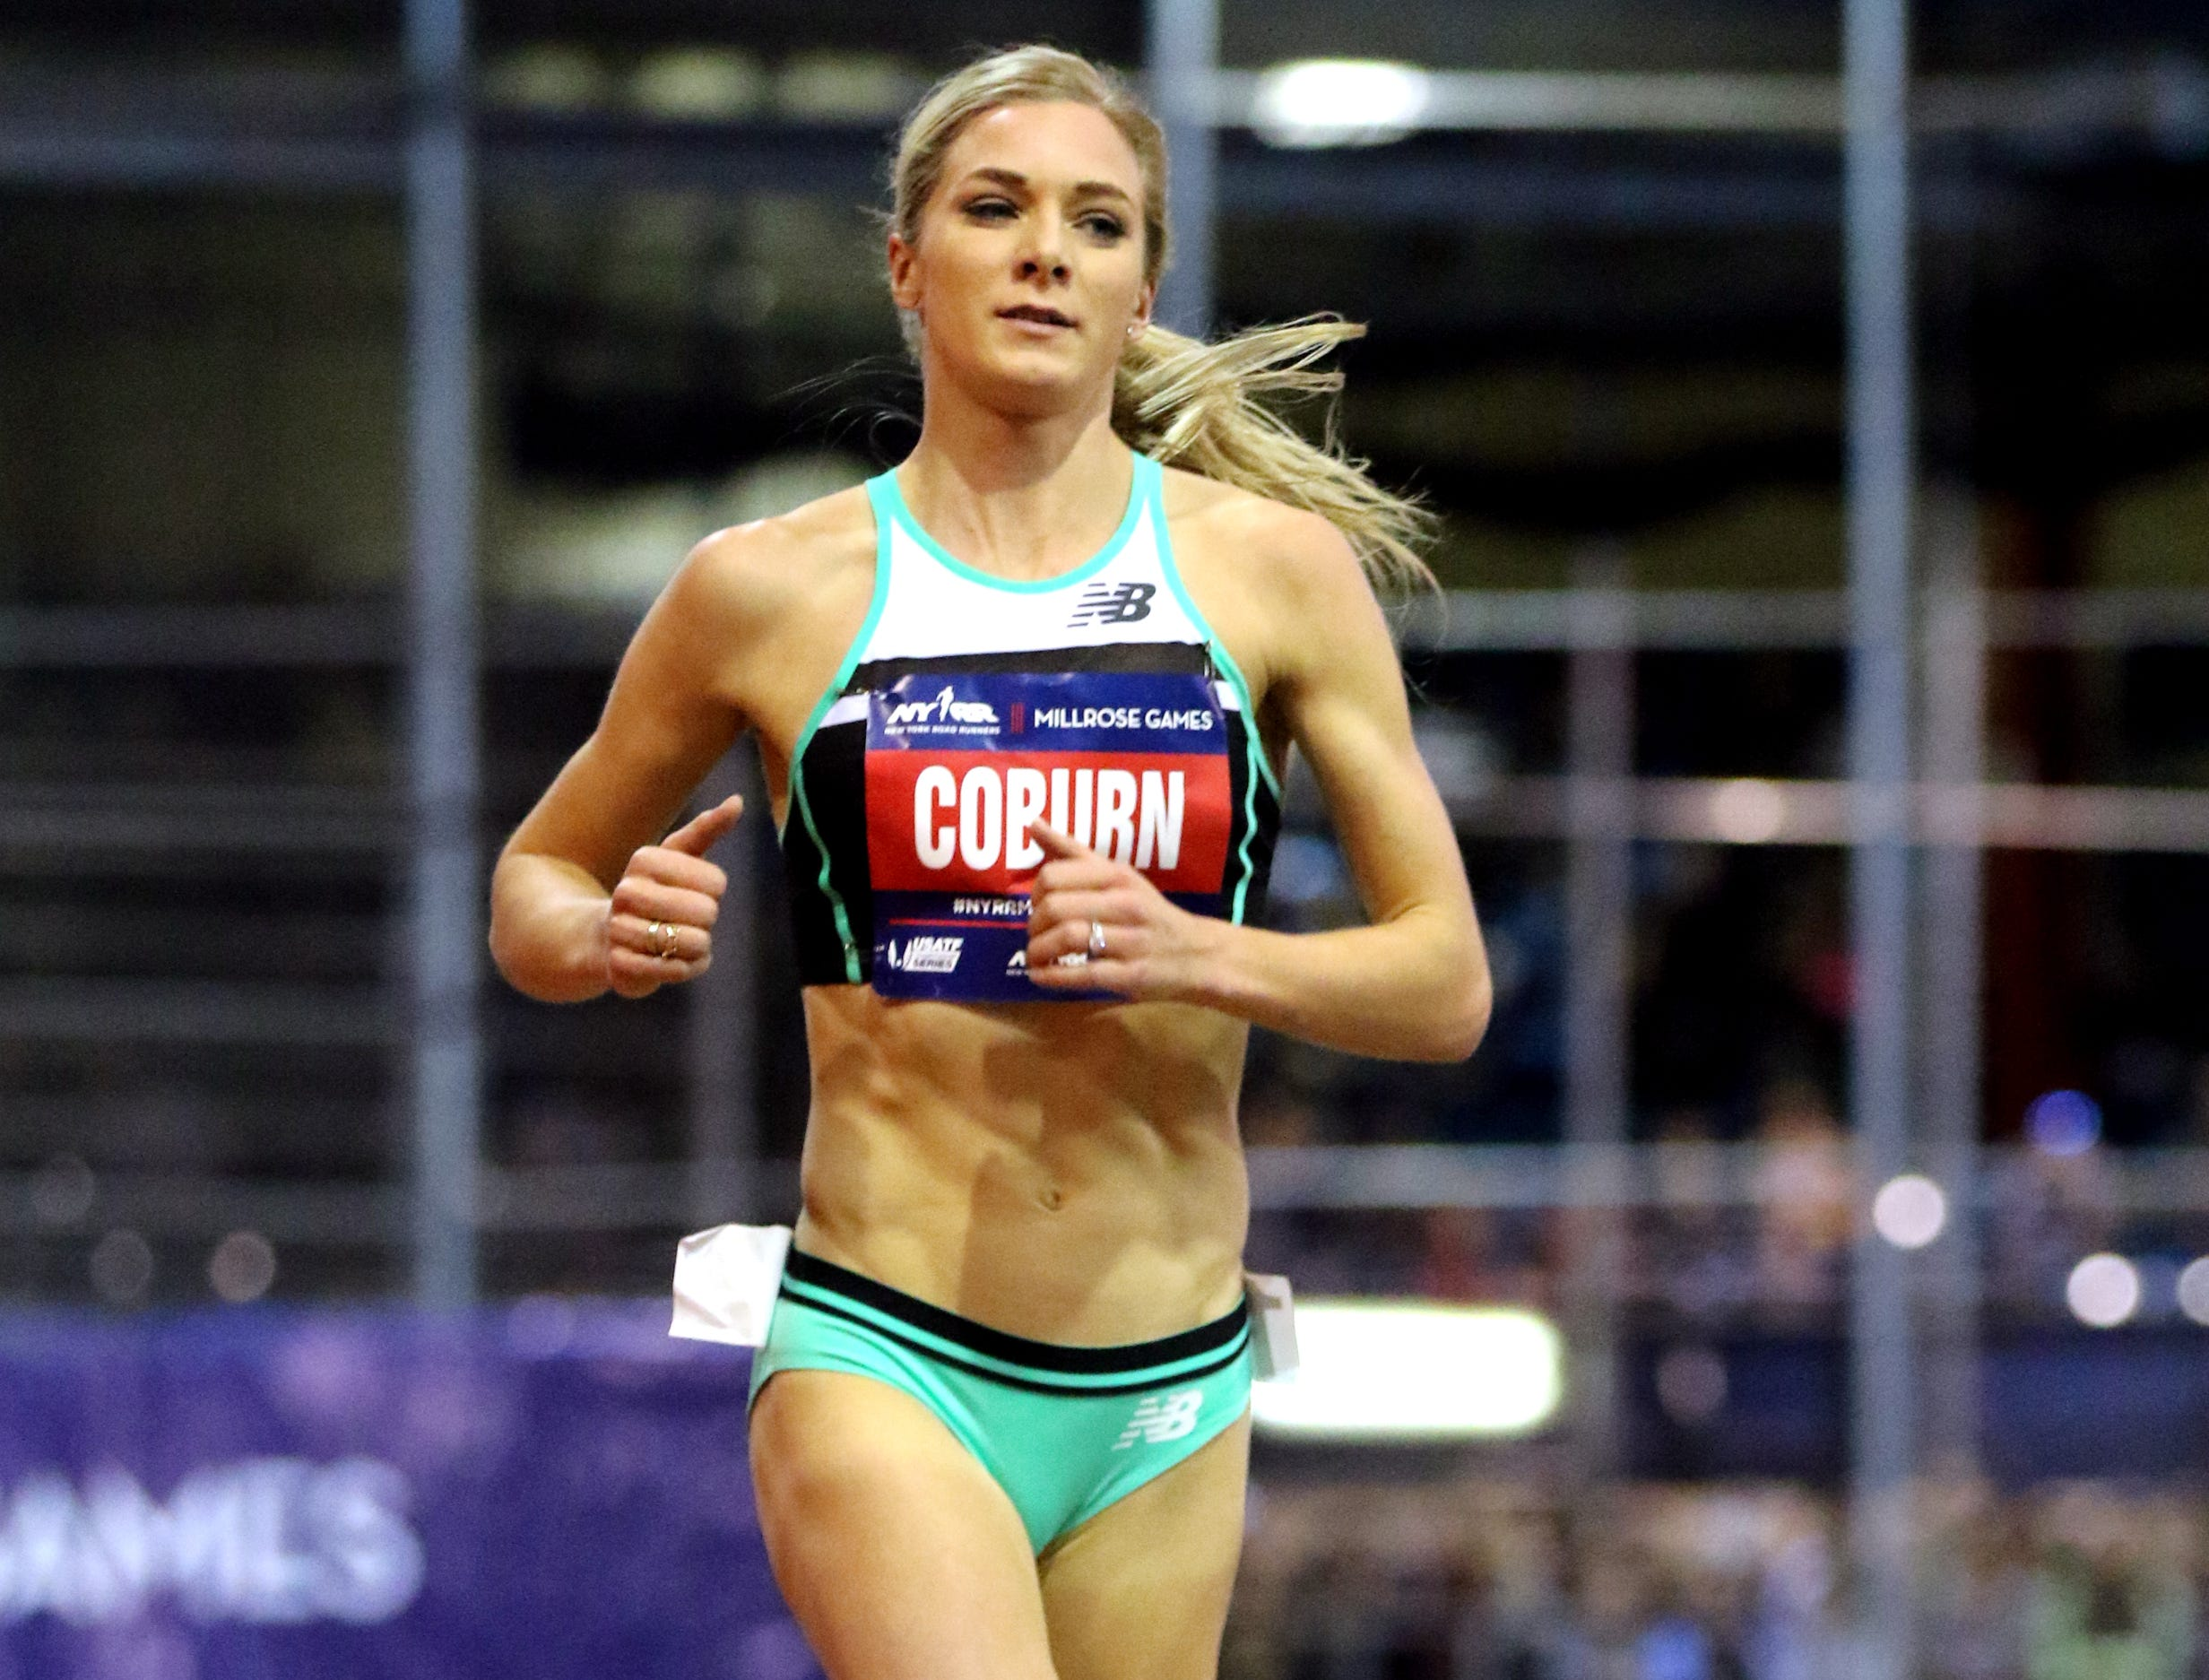 Emma Coburn took a fall during the 3000 meter race.  When she got up she was in last place but caught up to half of the field to finish in fifth place in a time of 8:52.27. Saturday, February 9, 2019